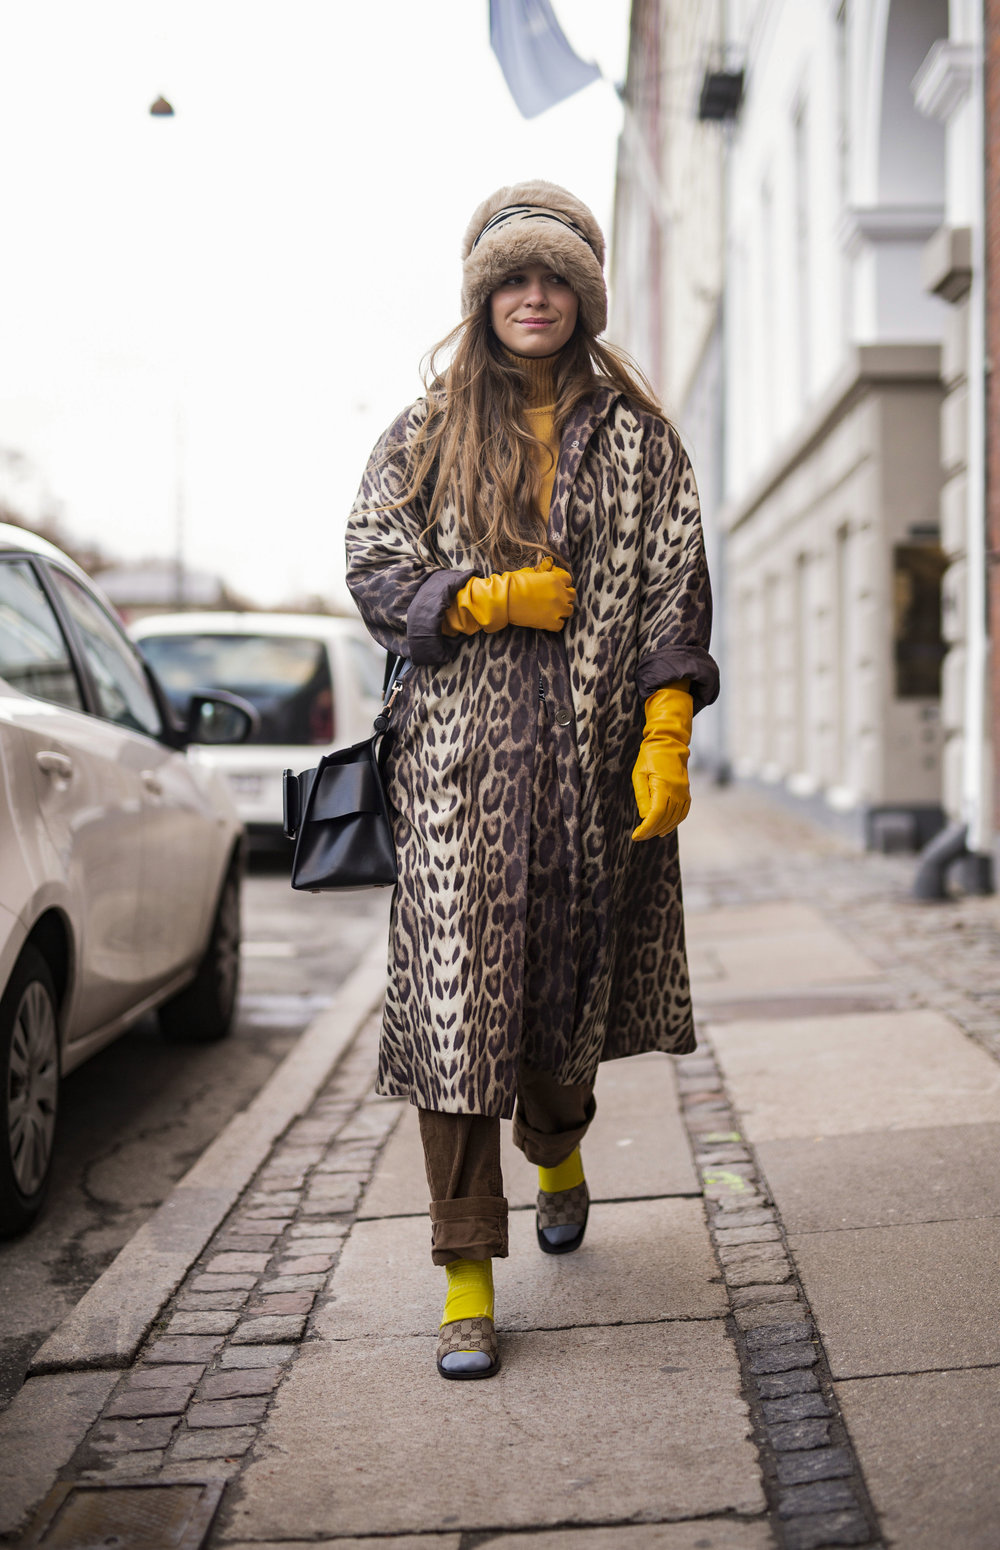 Streetstyle on the streets of Copenhagen during Fashion Week Streetstyle